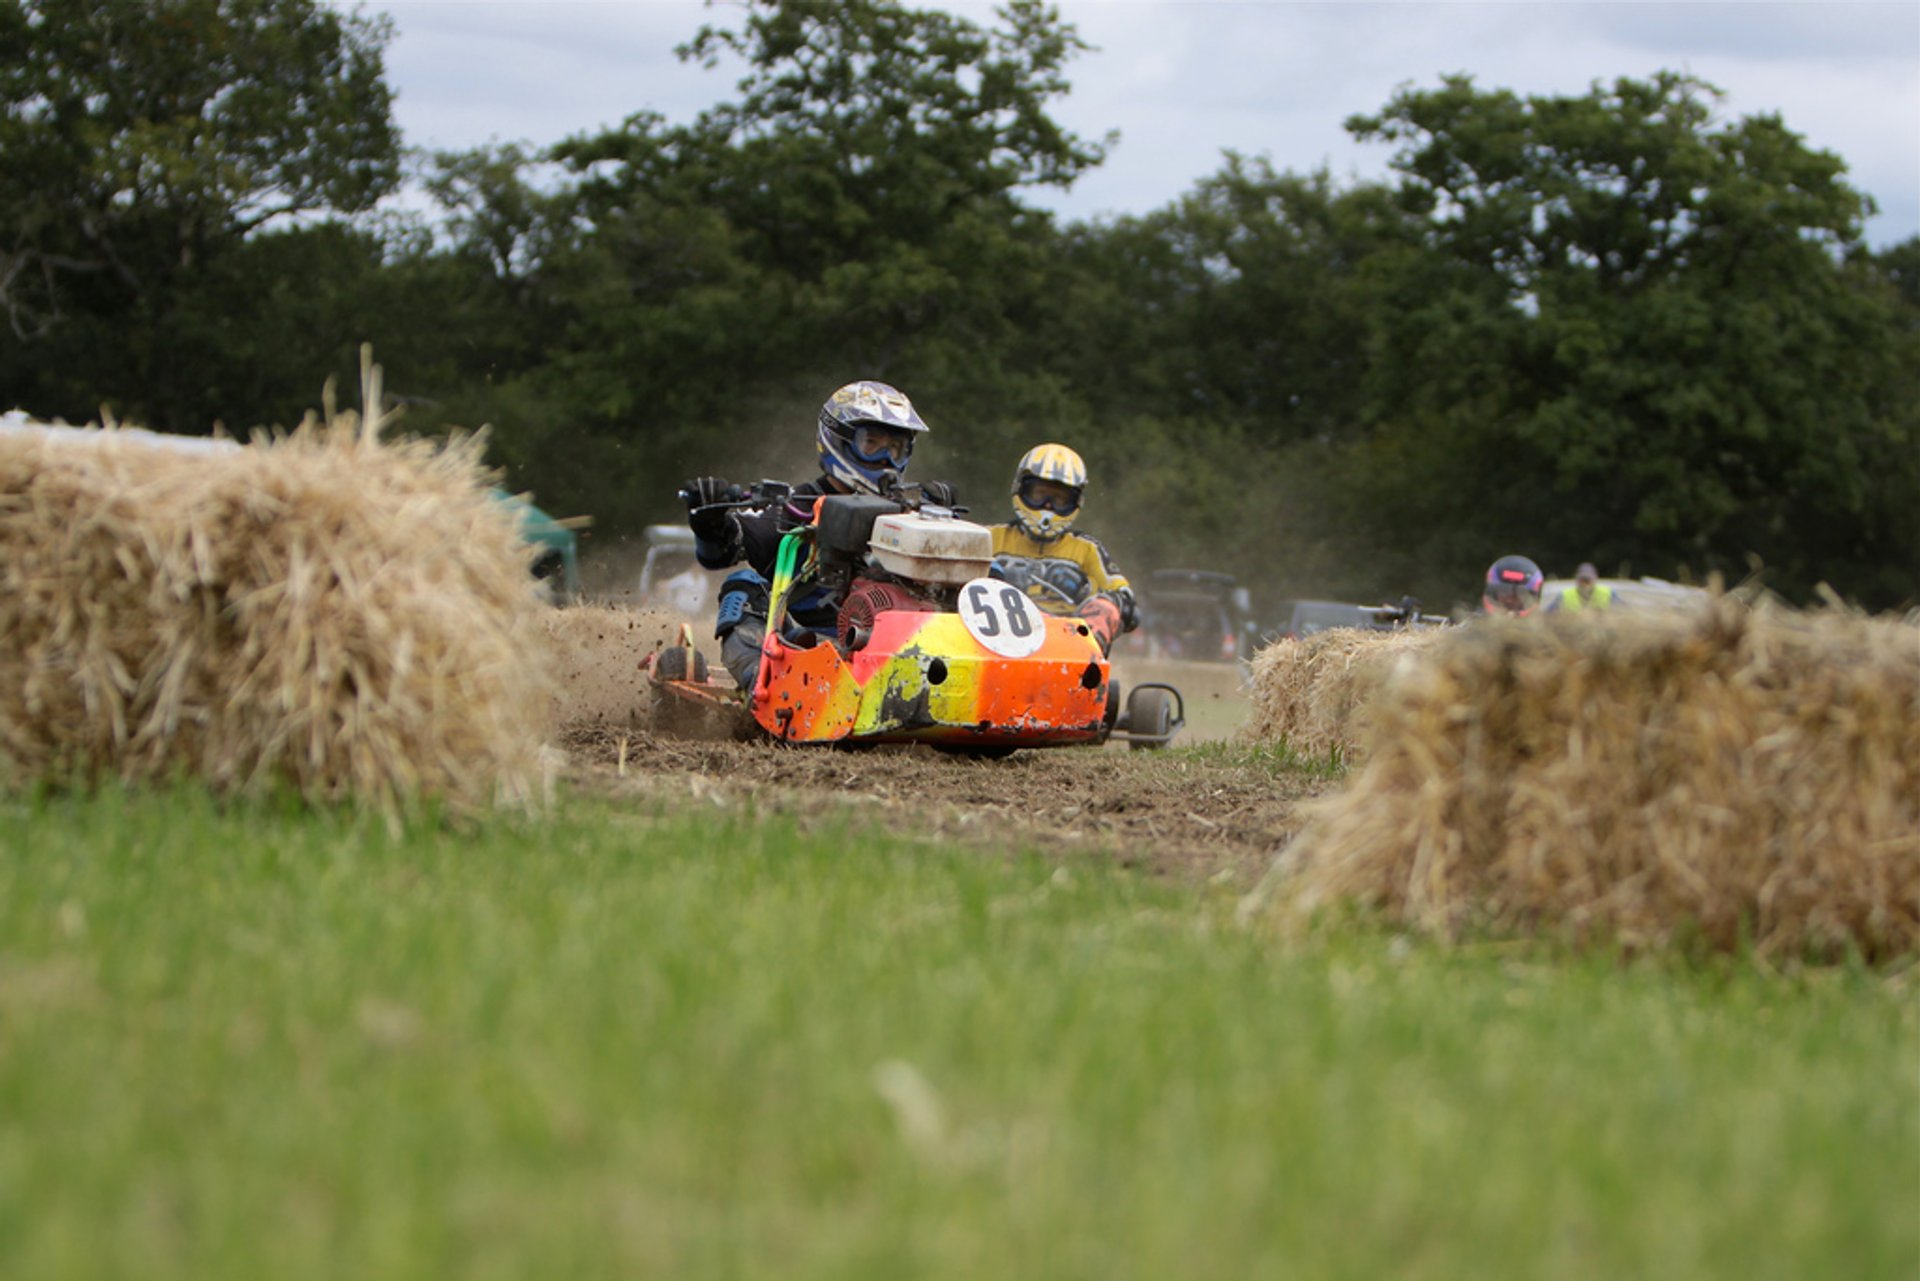 Lawn Mower Racing World Championships in England - Best Season 2020